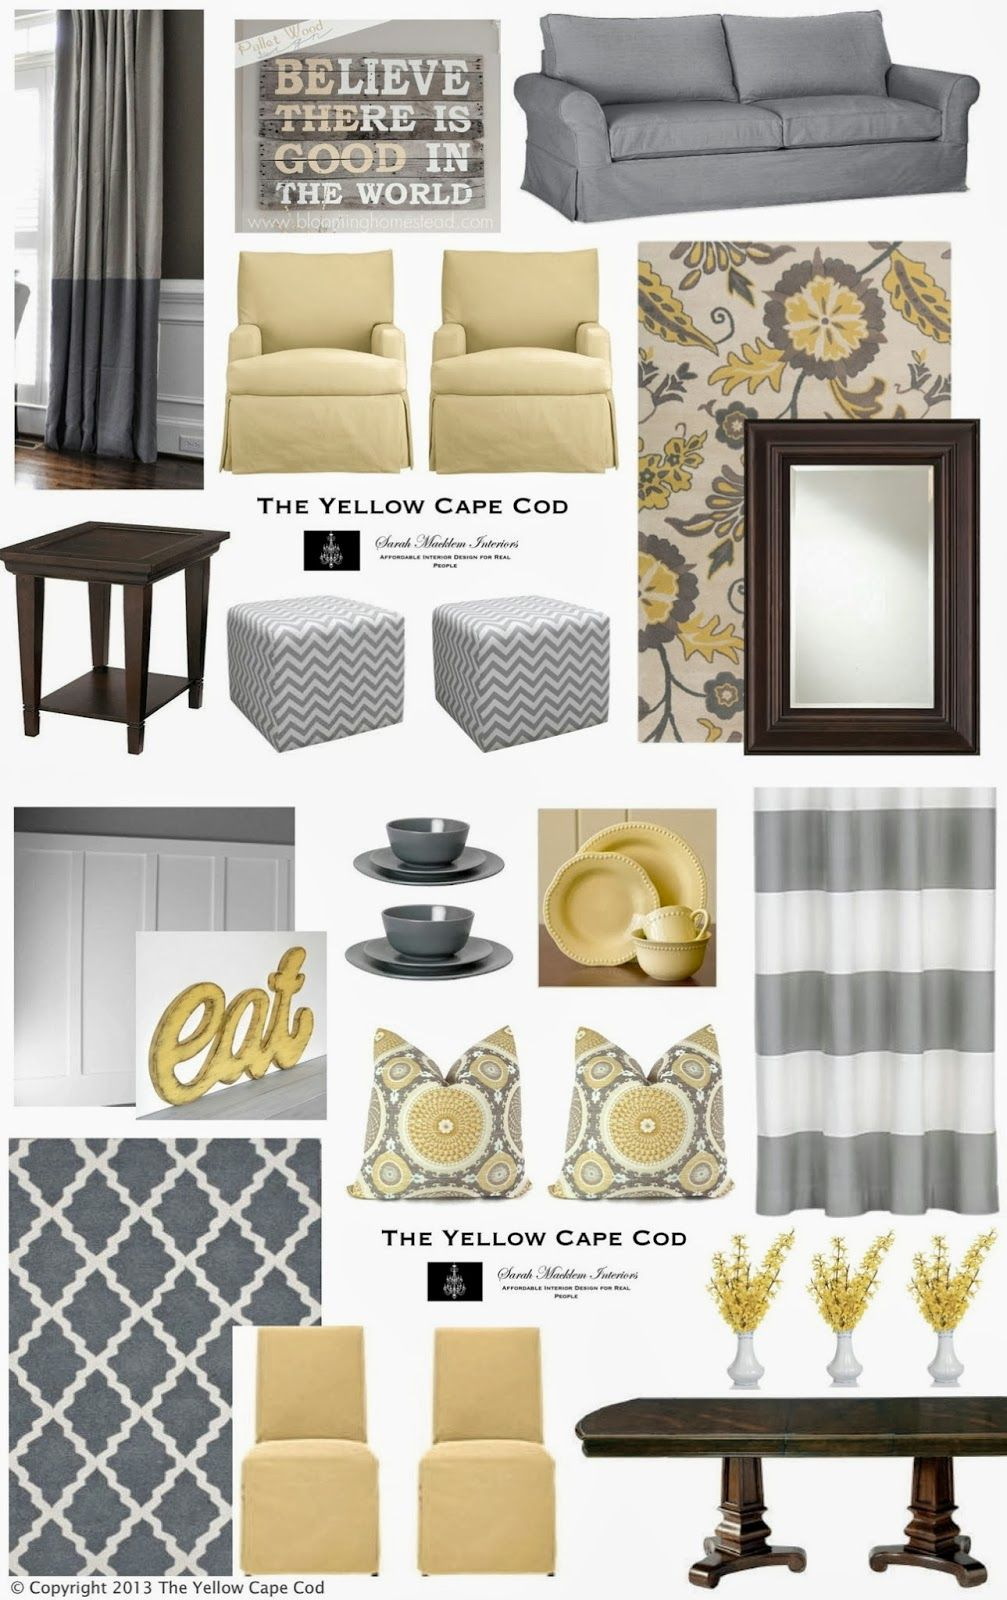 Yellow and grey living roomkitchen httpwww theyellowcapecod com